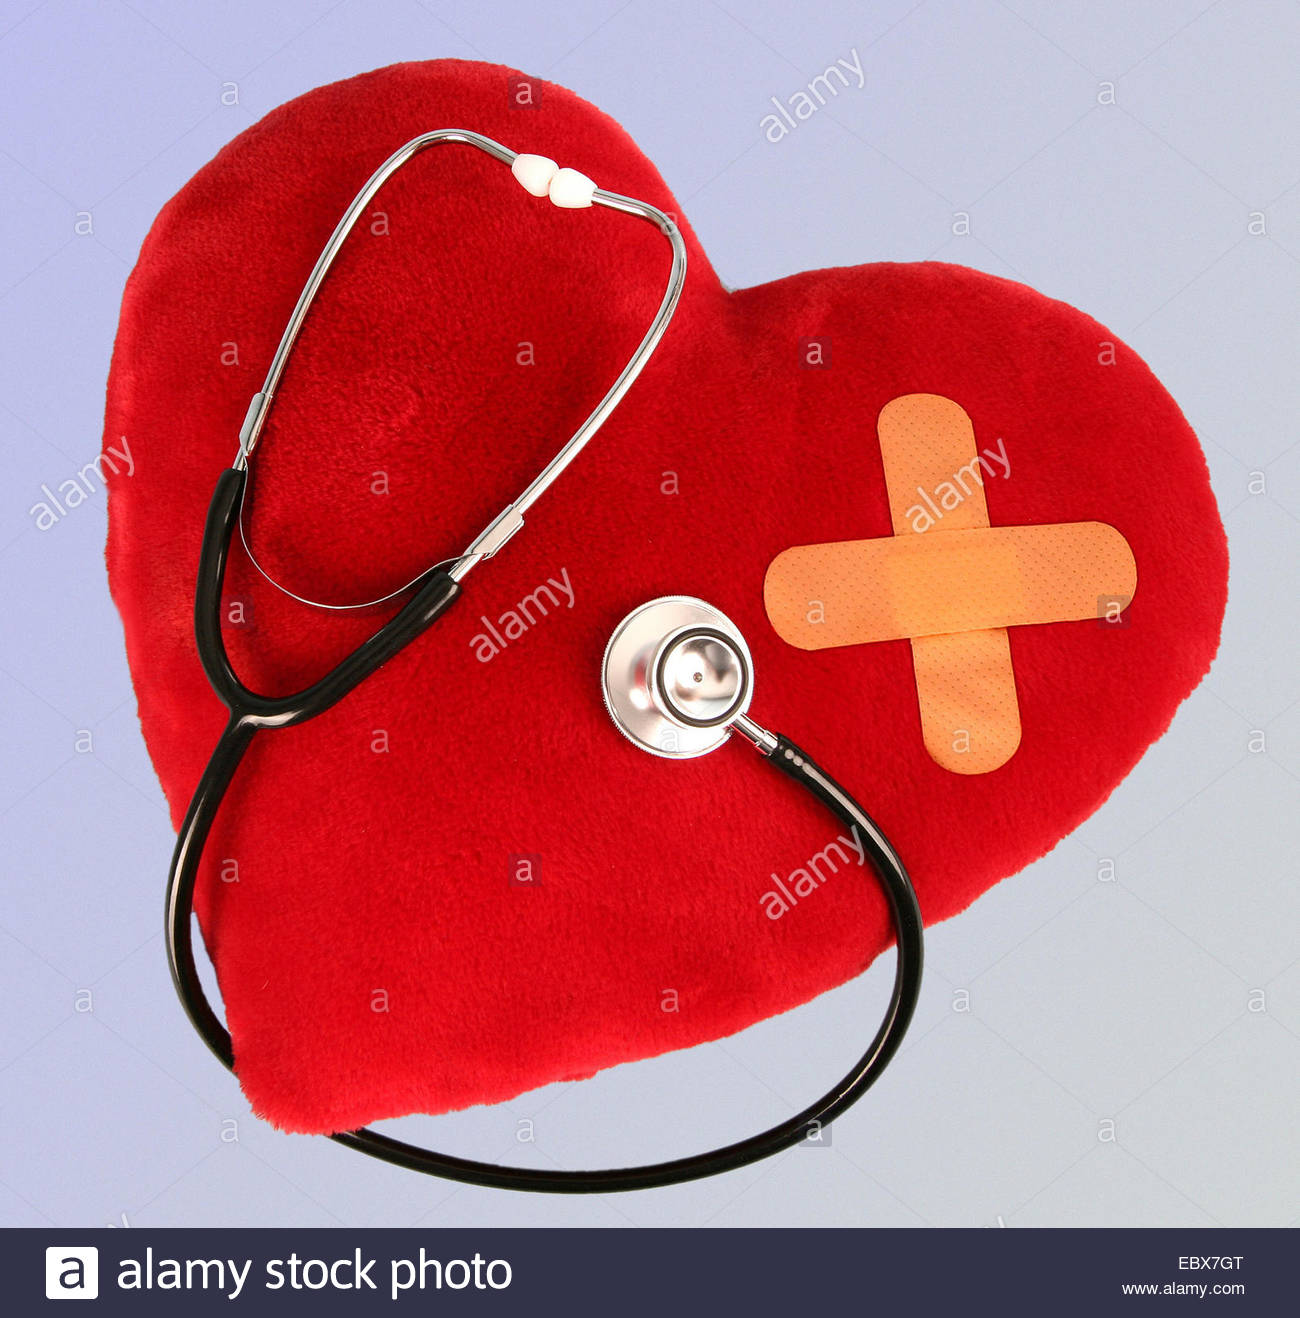 symbol picture, hurted heart - Stock Image